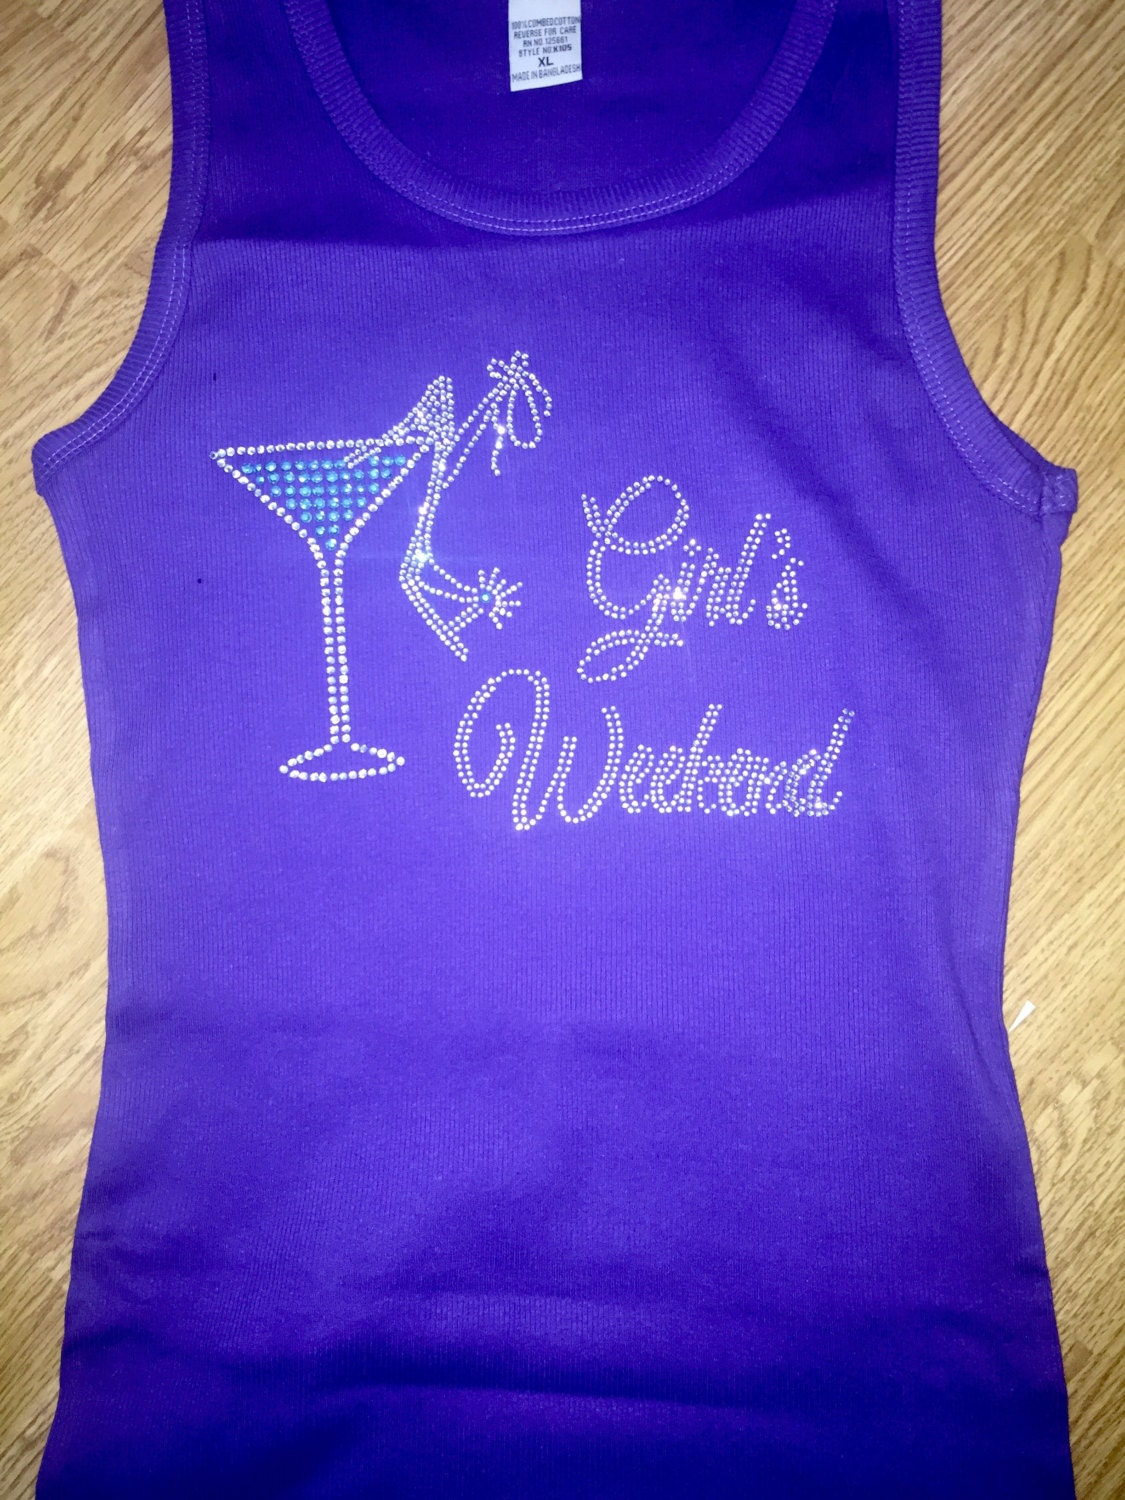 Girls Weekend Tank Top Gift Birthday Lace Shirts Ladies Glitzy Drinking